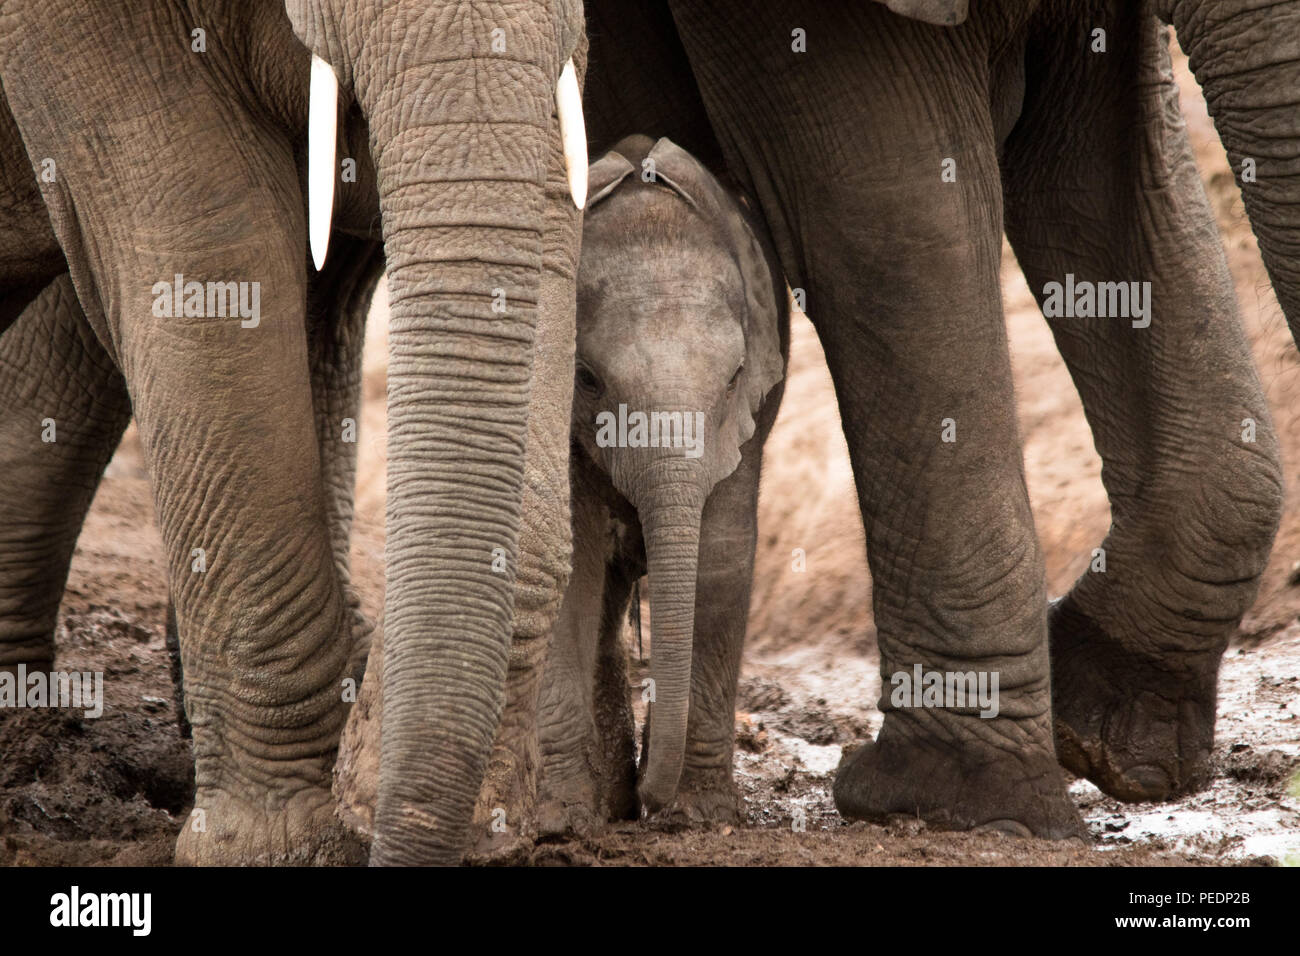 A baby elephant peeks out from under his mother's legs. Stock Photo